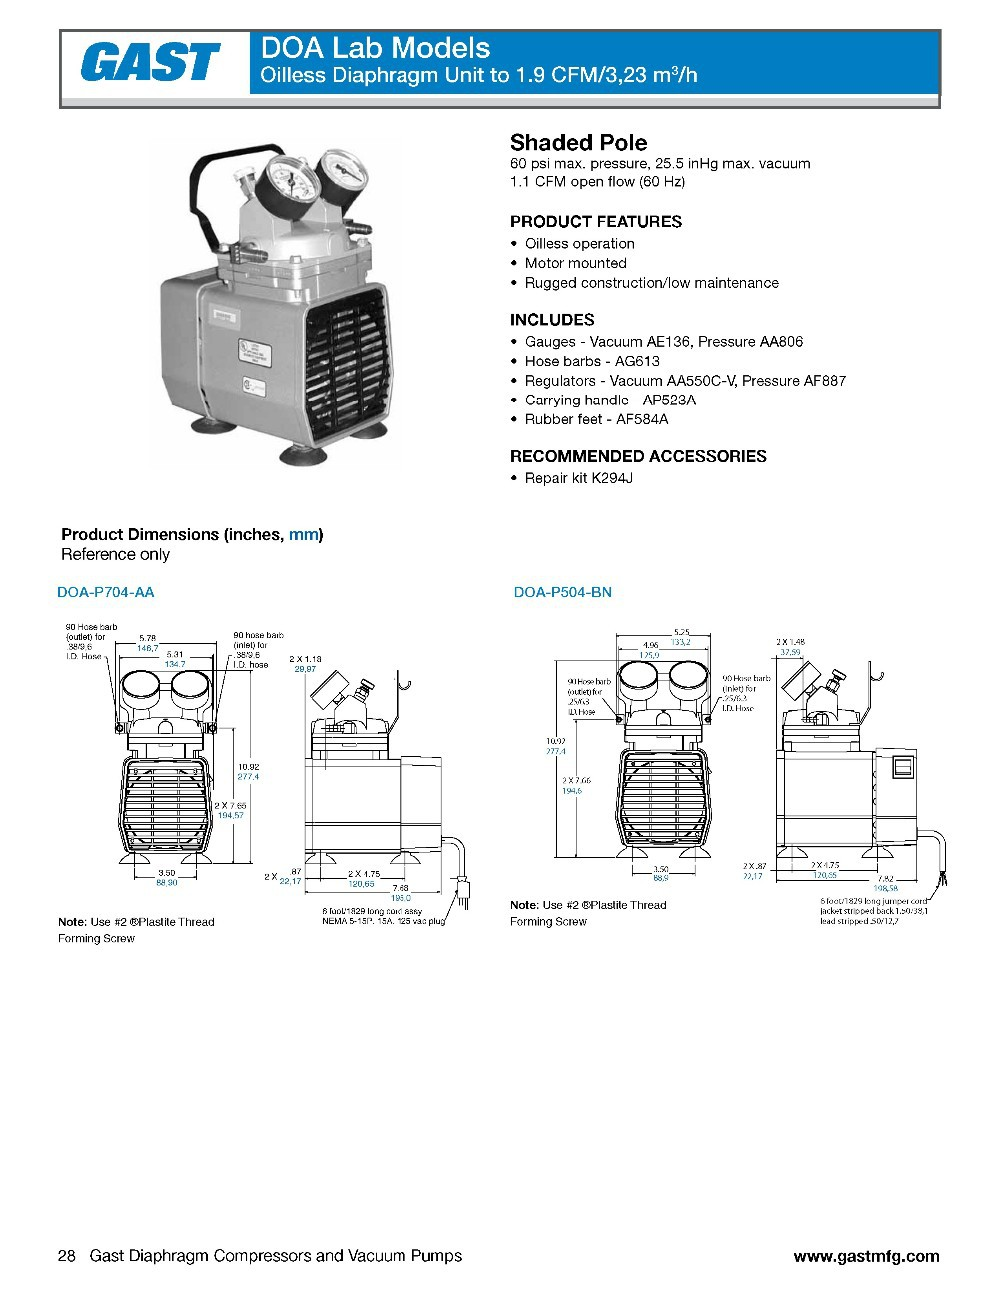 New Gast Doa P504 Bn Diaphragm Compressor Vacuum Pump Ac220v In Oilless Wire Diagram Aeproduct